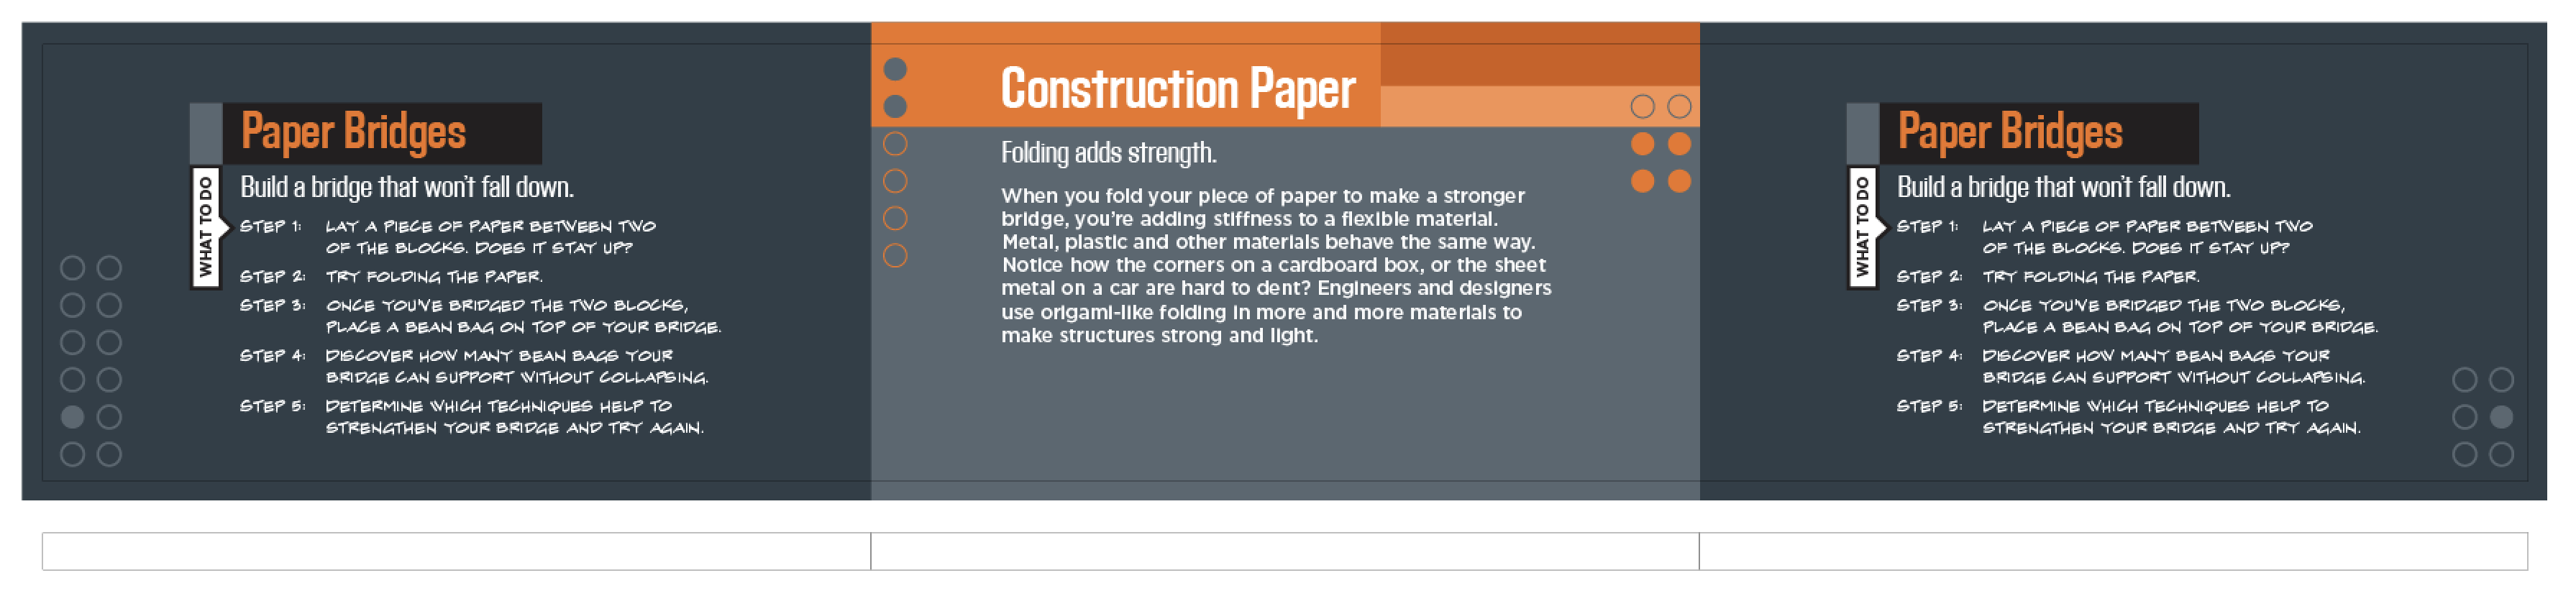 Paper Bridges Instructions